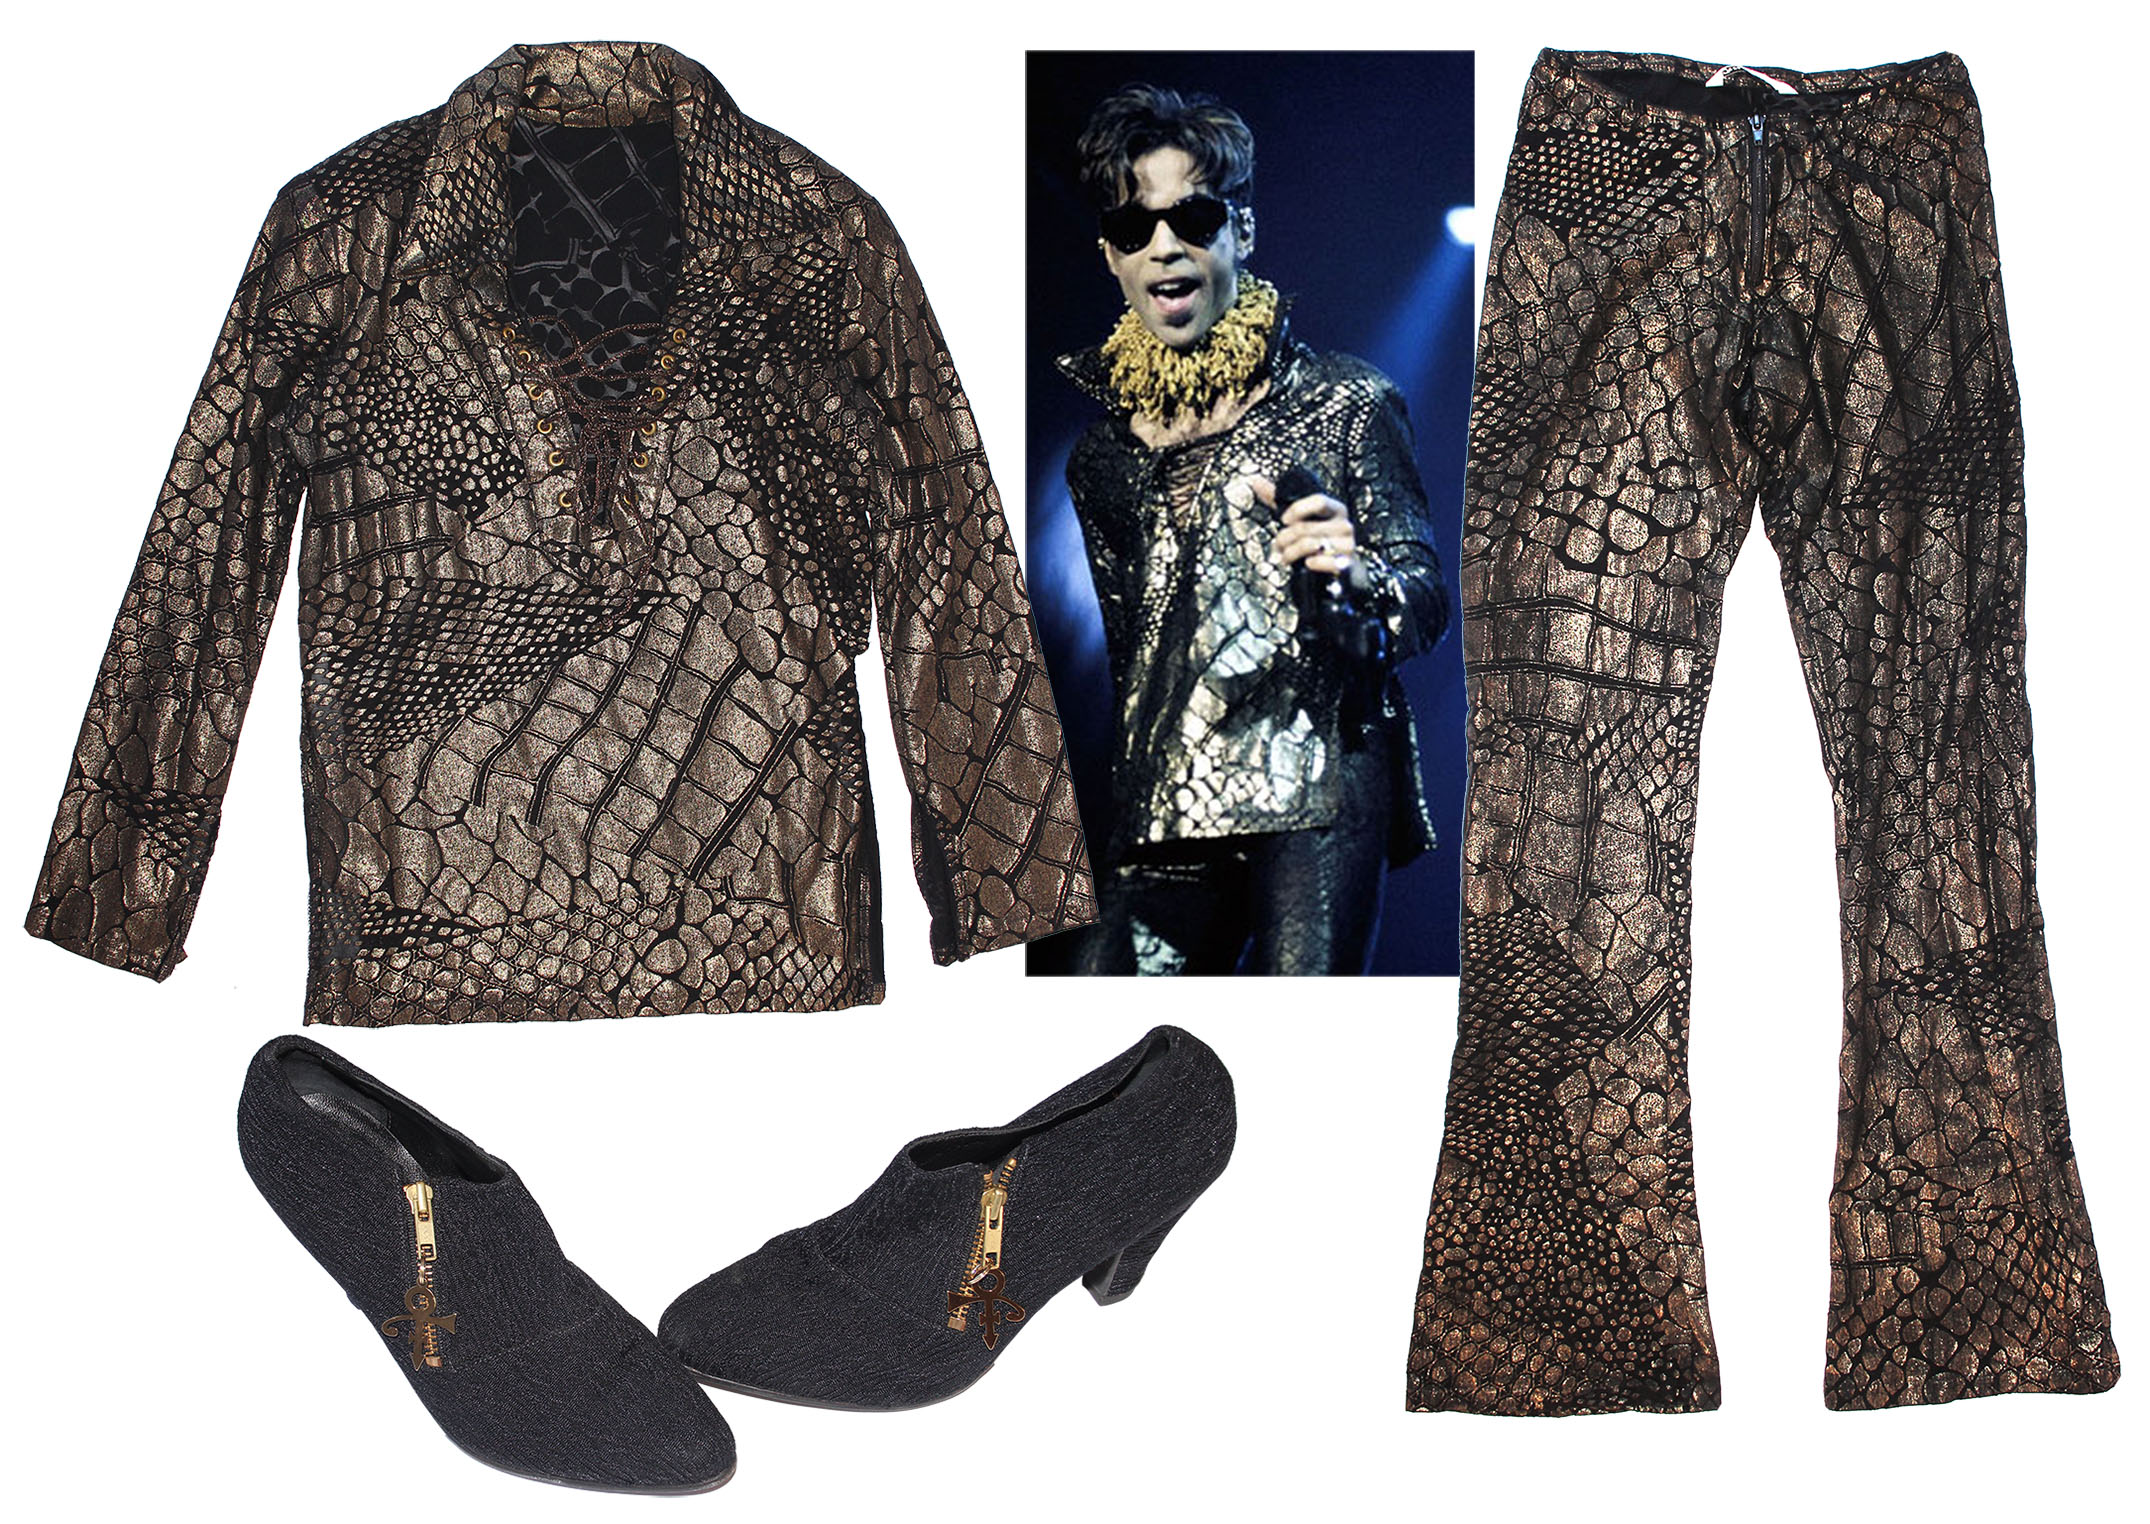 Prince worn shirt Prince Stage-Worn Black & Gold Costume -- With Shoes Adorned With His Love Symbol